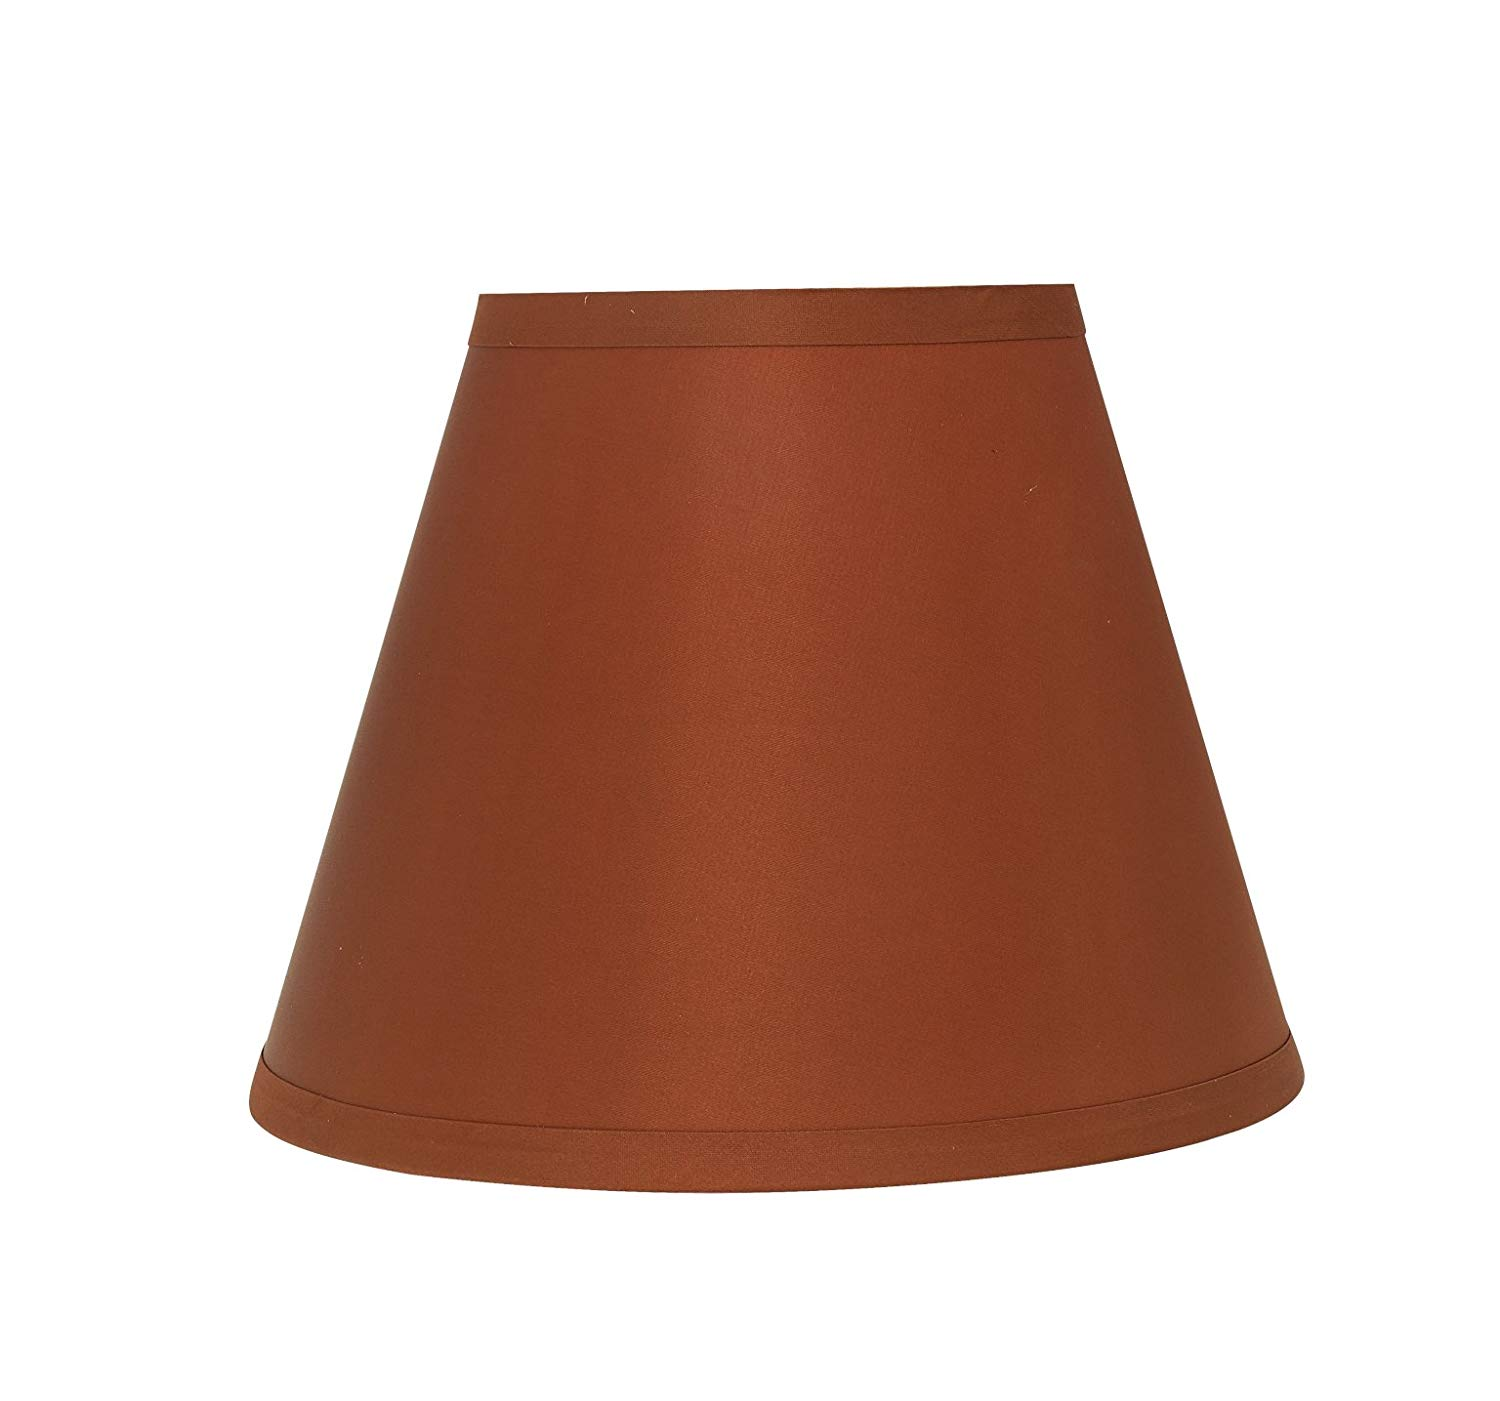 """Aspen Creative 32418 Transitional Hardback Empire Shaped Spider Construction Lamp Shade in Redwood, 9"""" Wide (5"""" x 9"""" x 7"""")"""